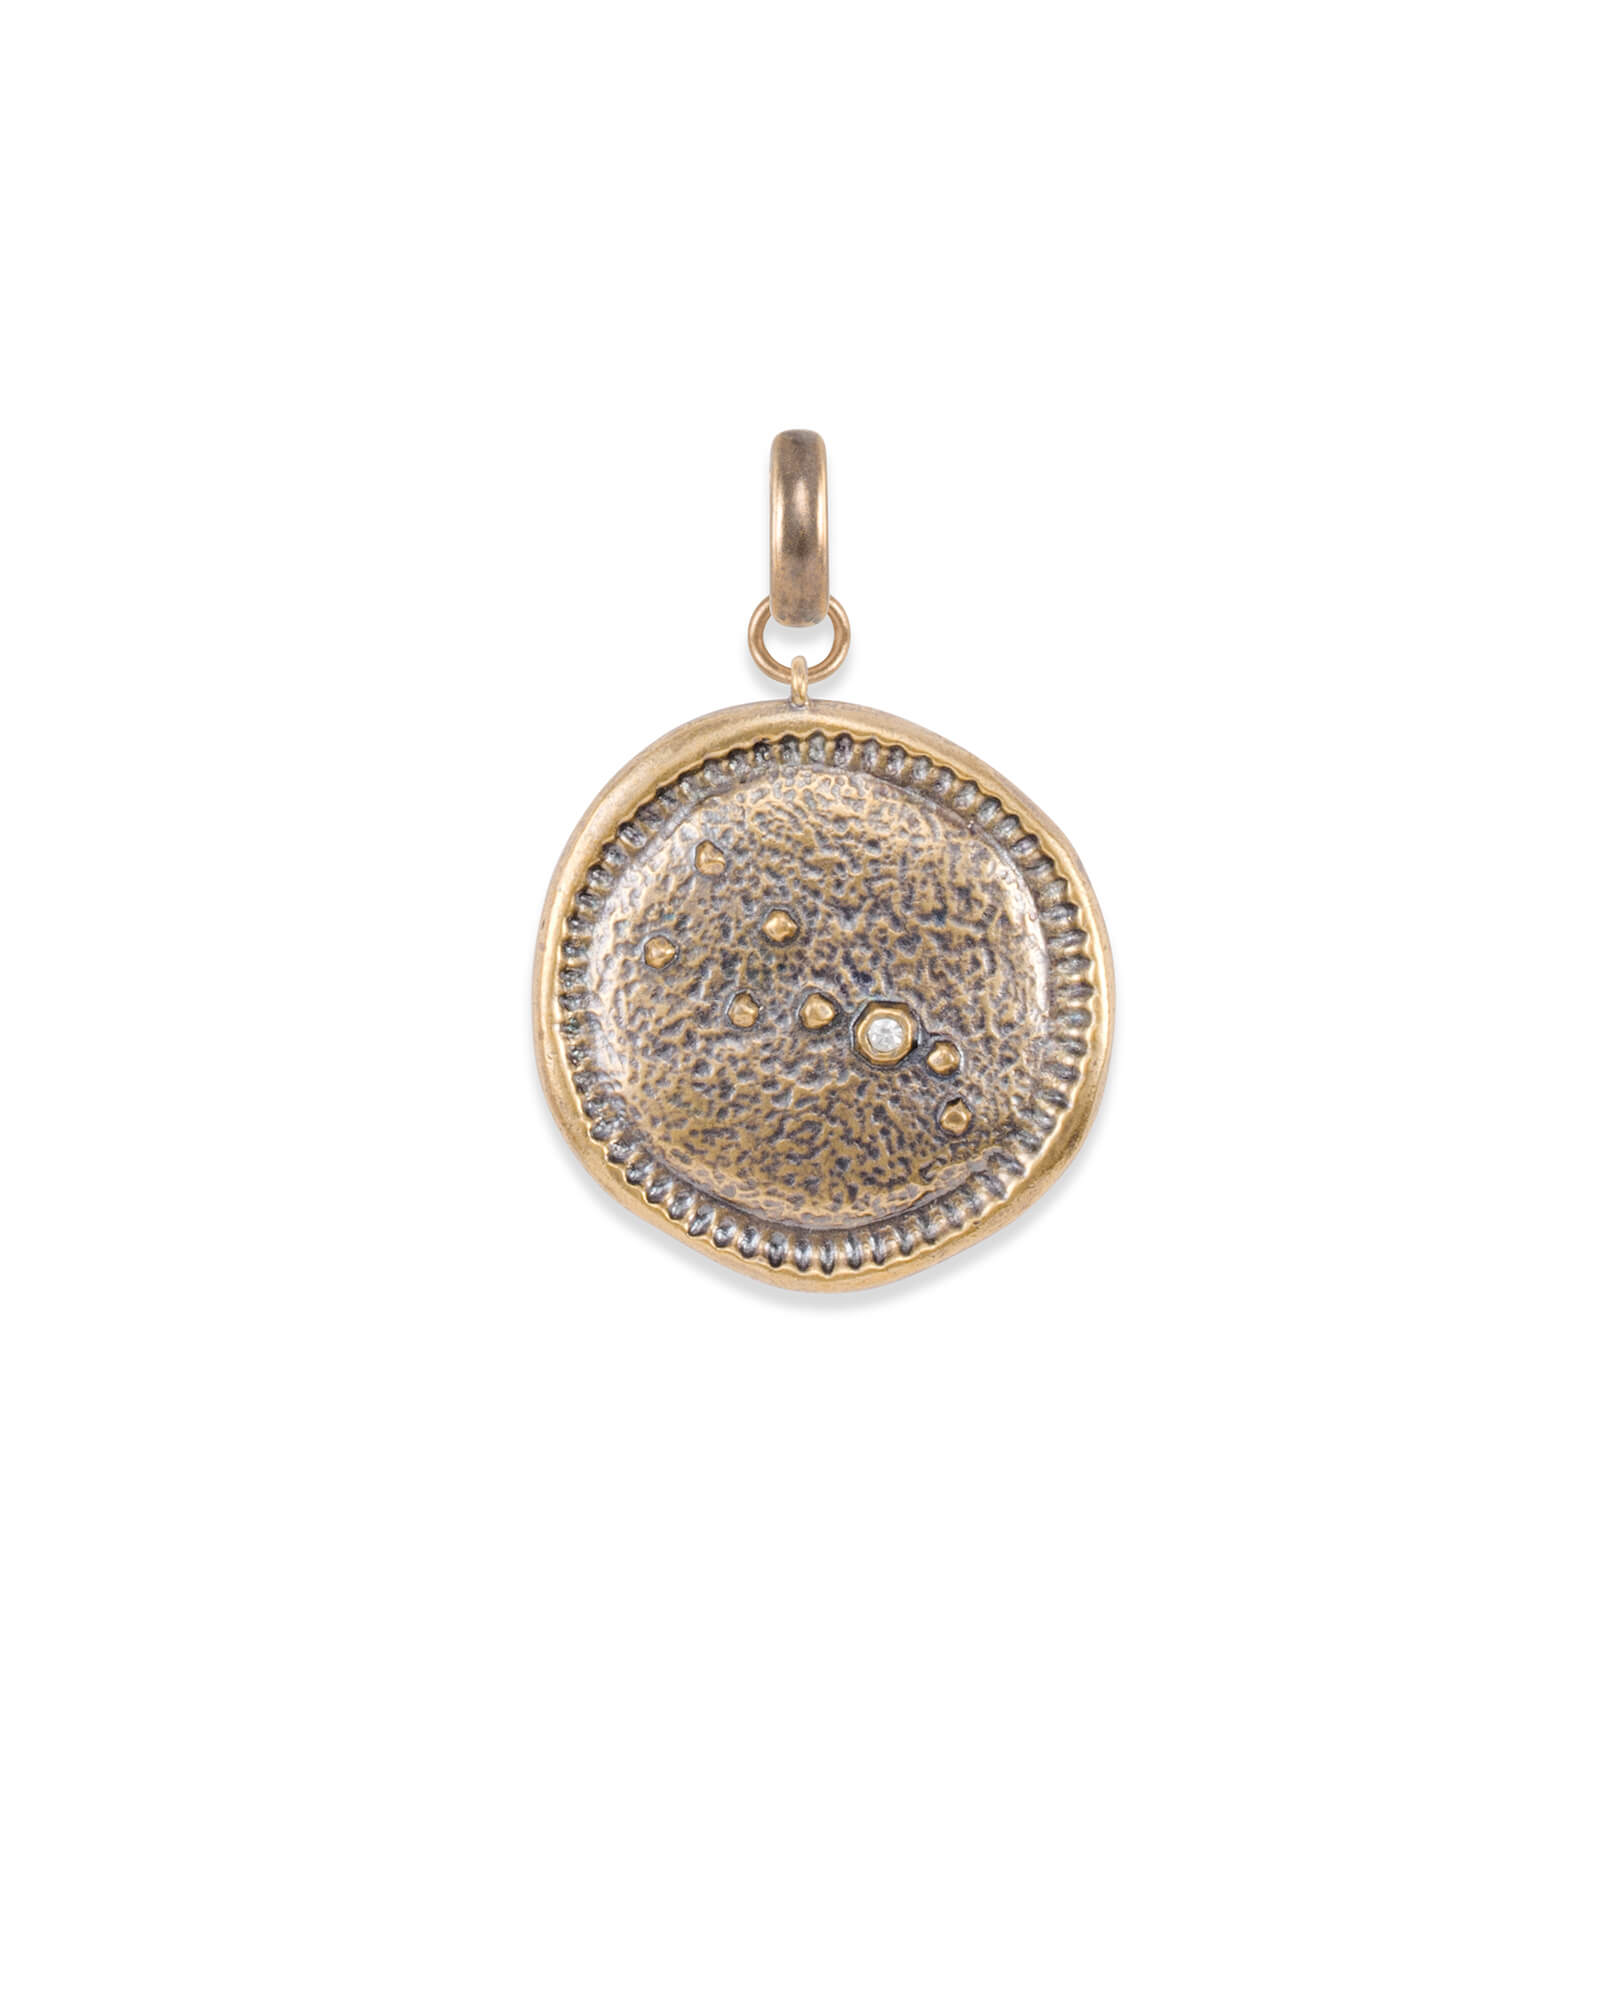 Taurus Coin Charm in Vintage Gold